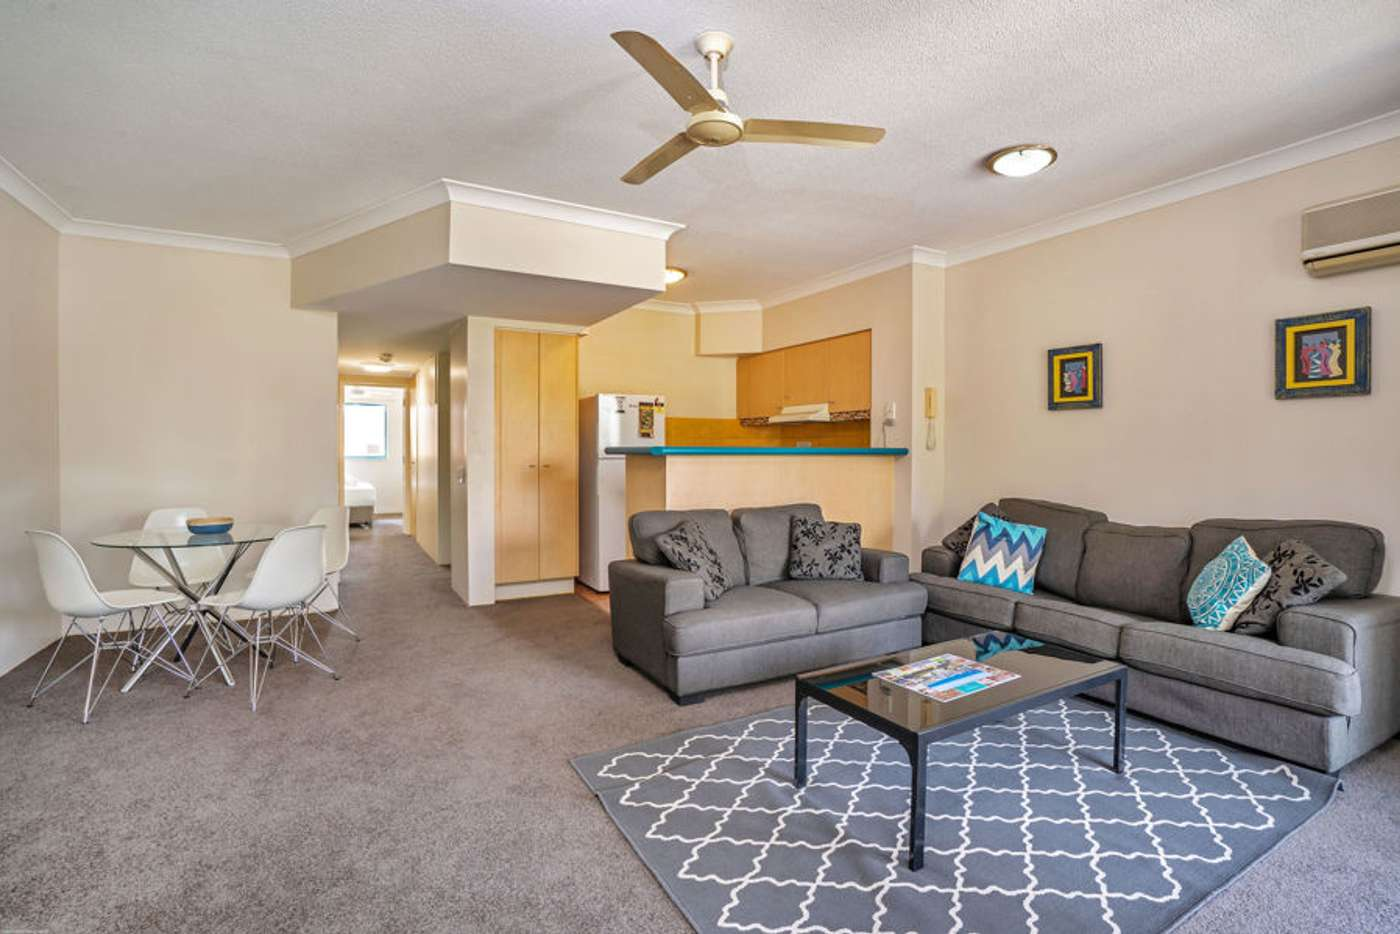 Fifth view of Homely unit listing, 41/ 112 Surf Parade, Broadbeach QLD 4218